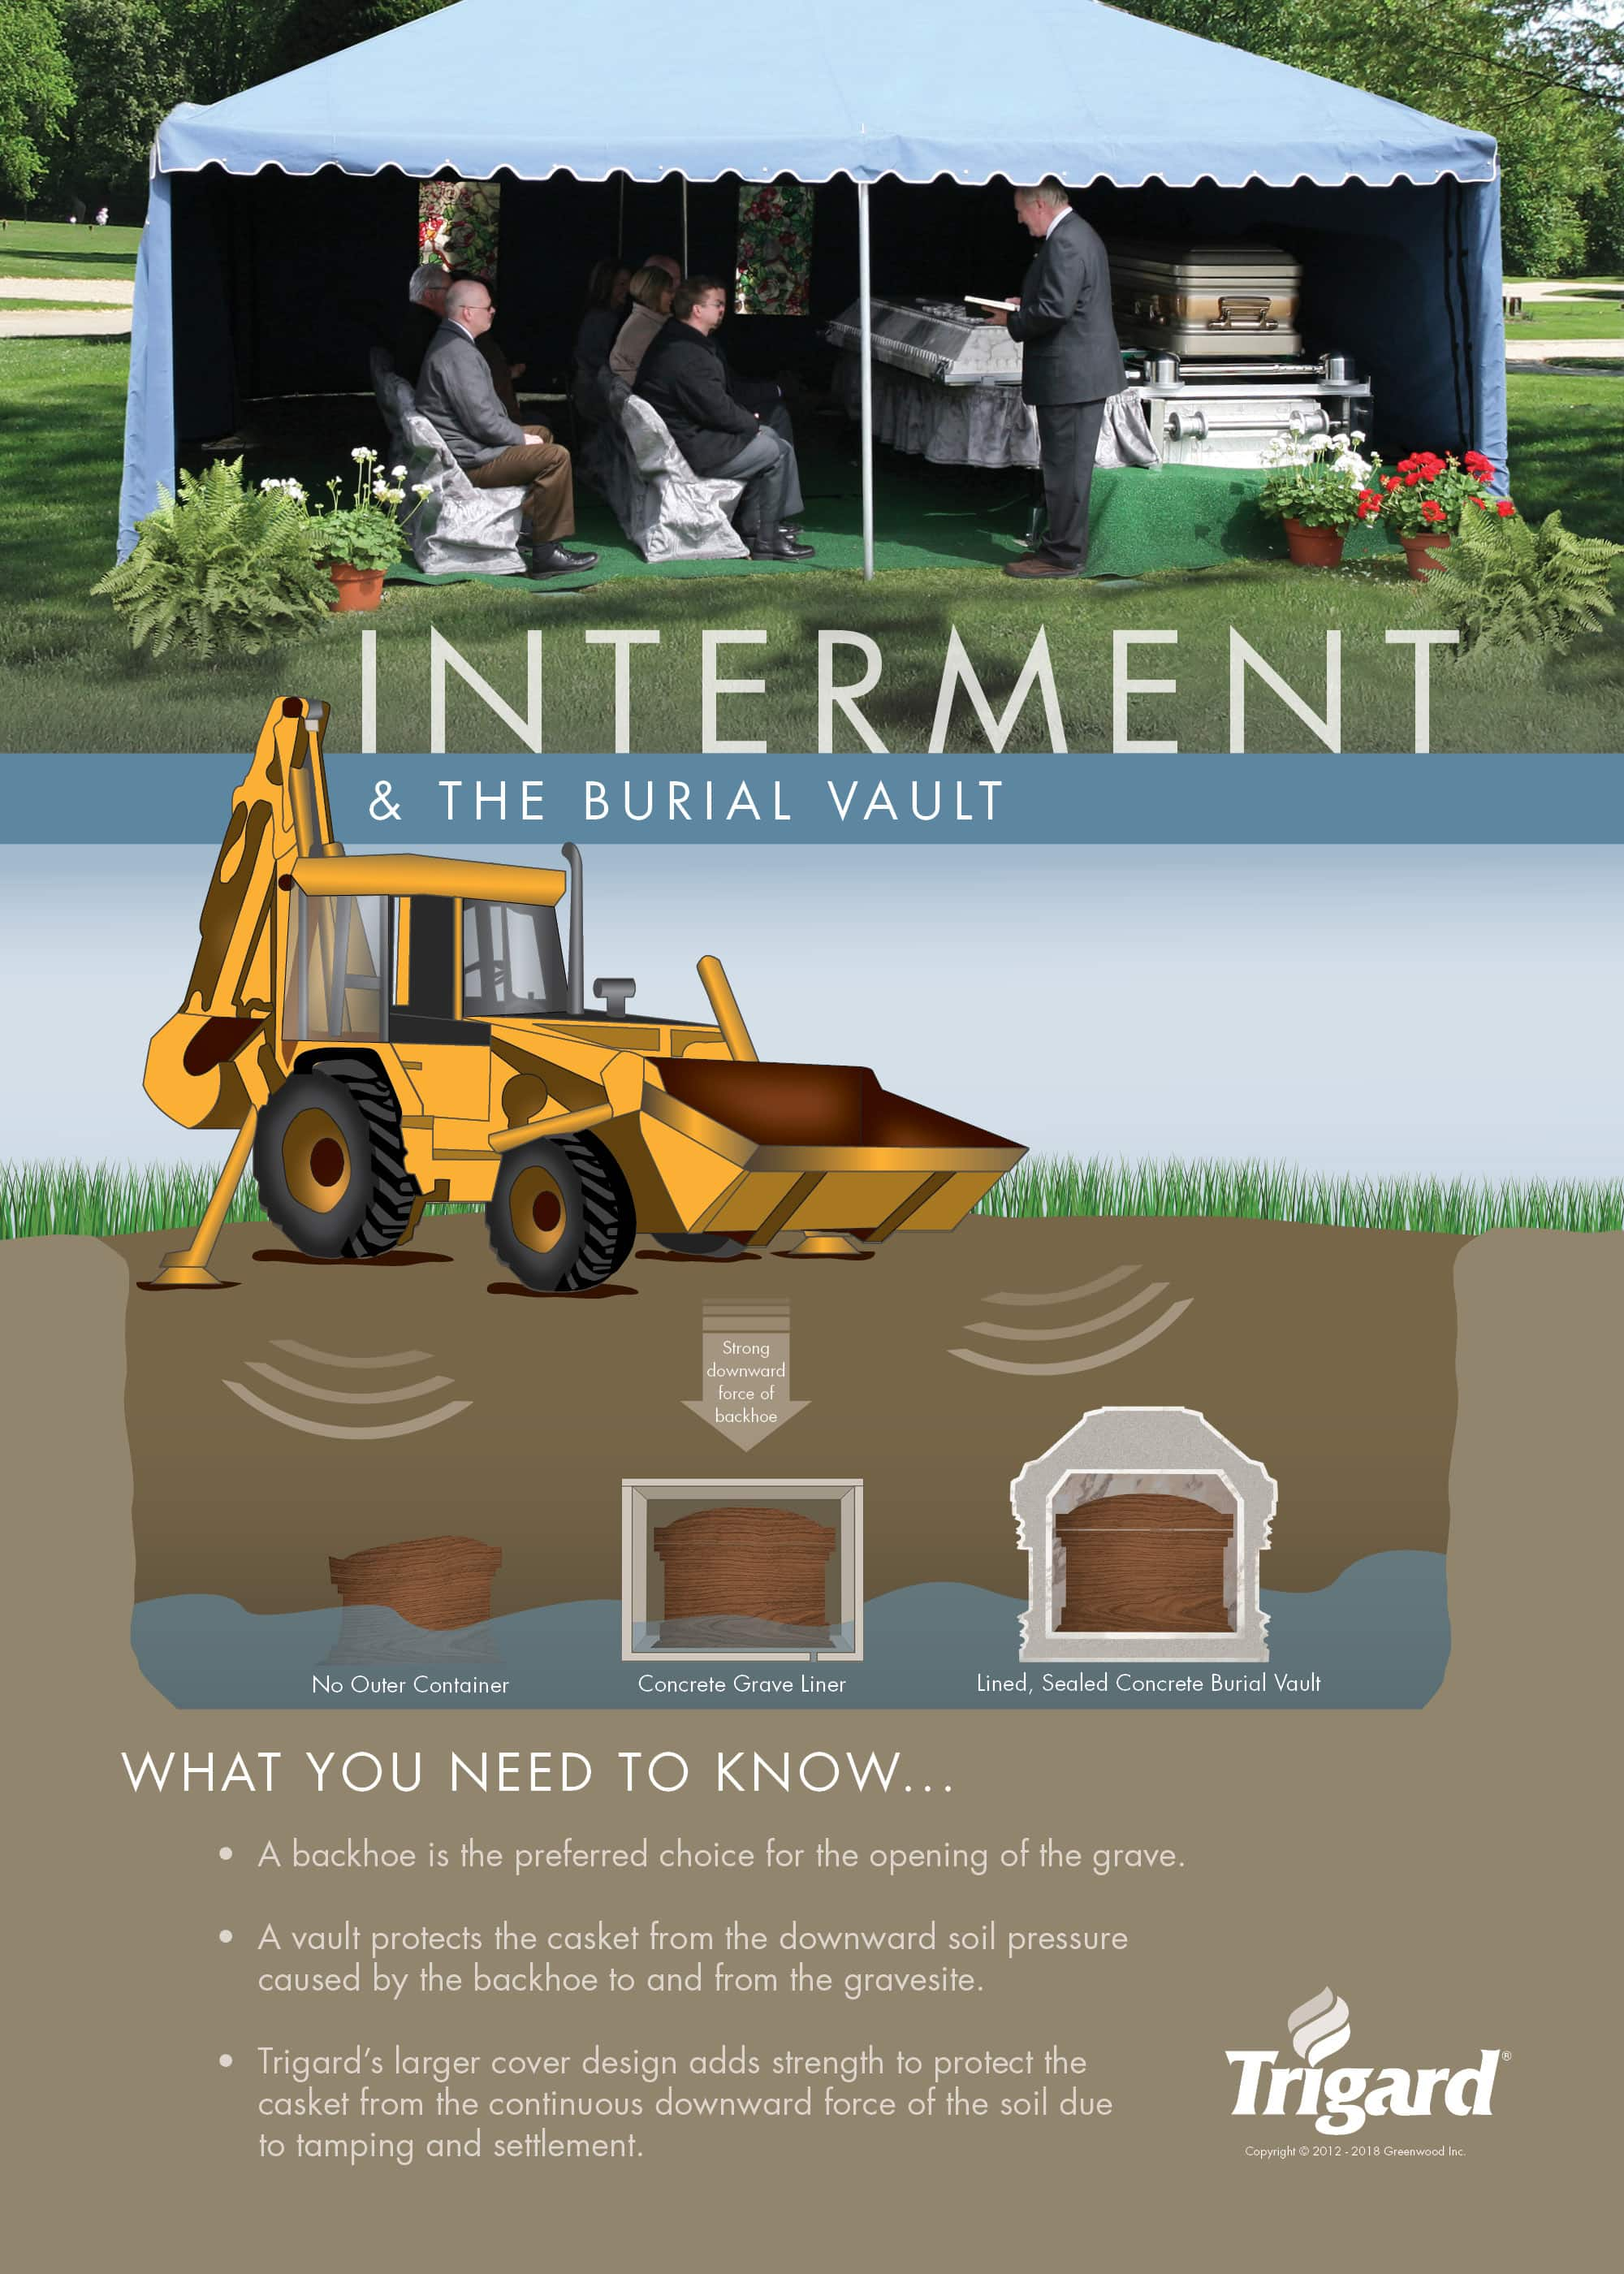 Interment and the Burial Vault